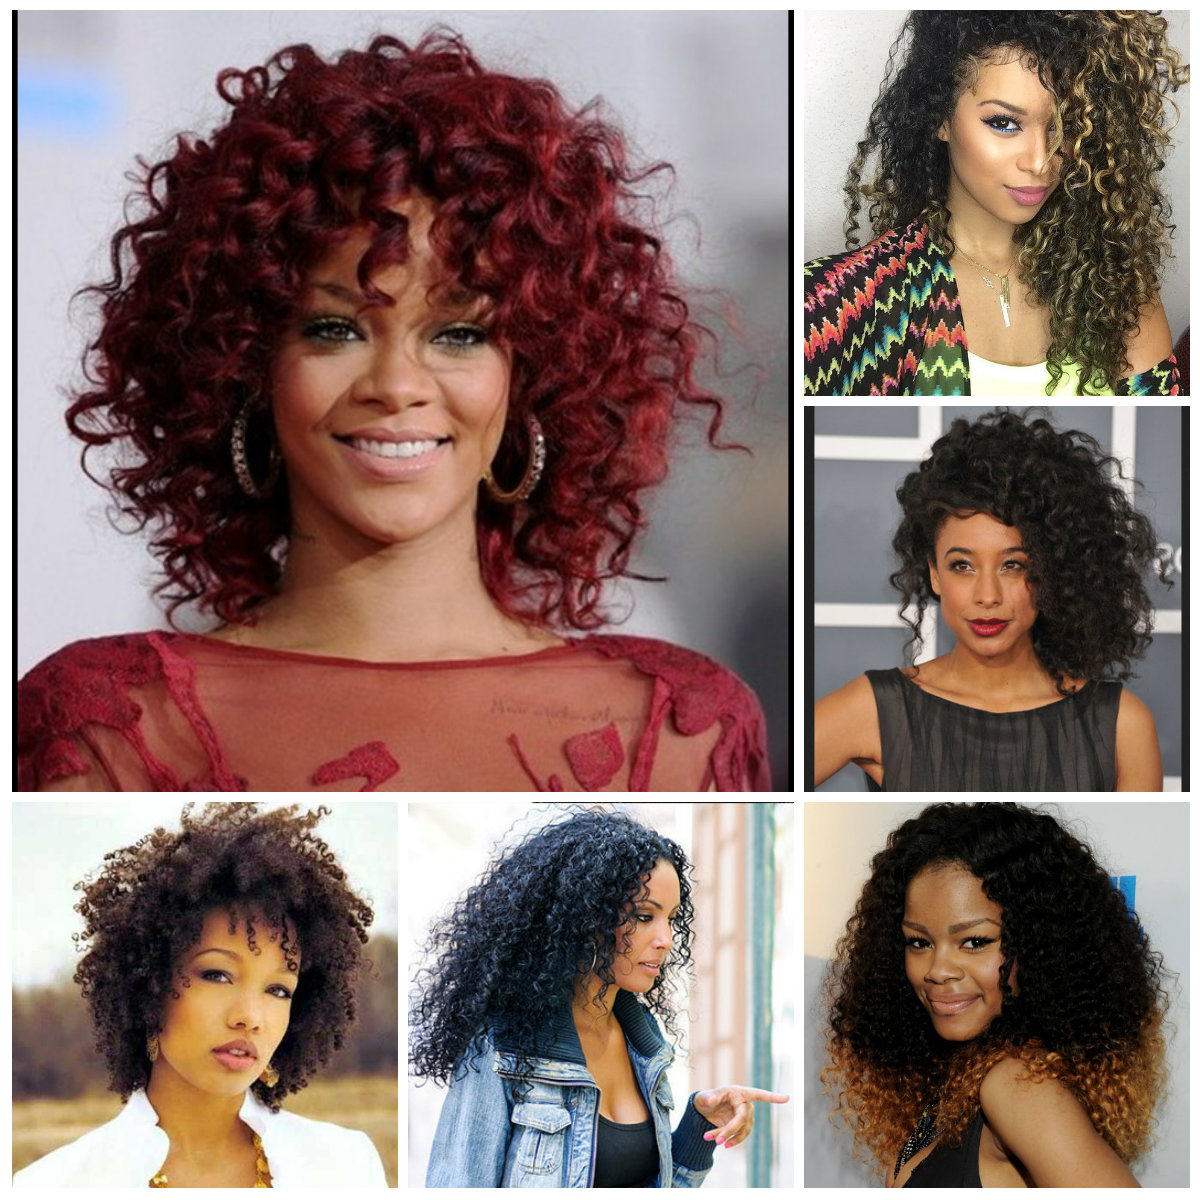 Big Natural Curly Hairstyles For Black Women (View 6 of 20)